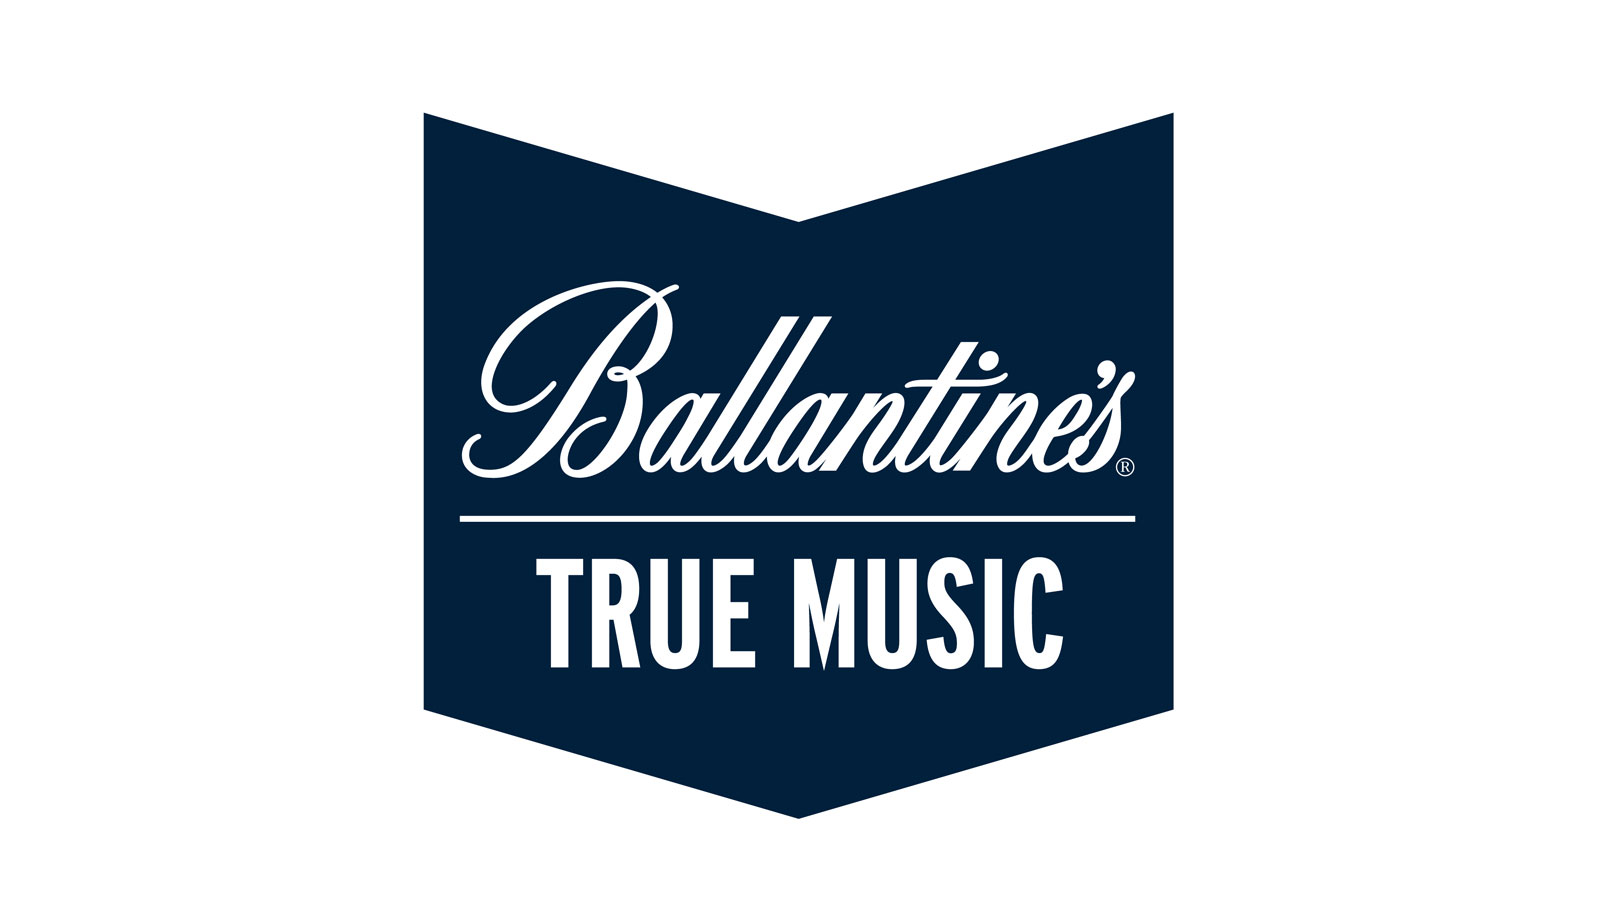 Ballantine's kicks off Malta's first True Music Party with a live screening of Krakow's Boiler Room